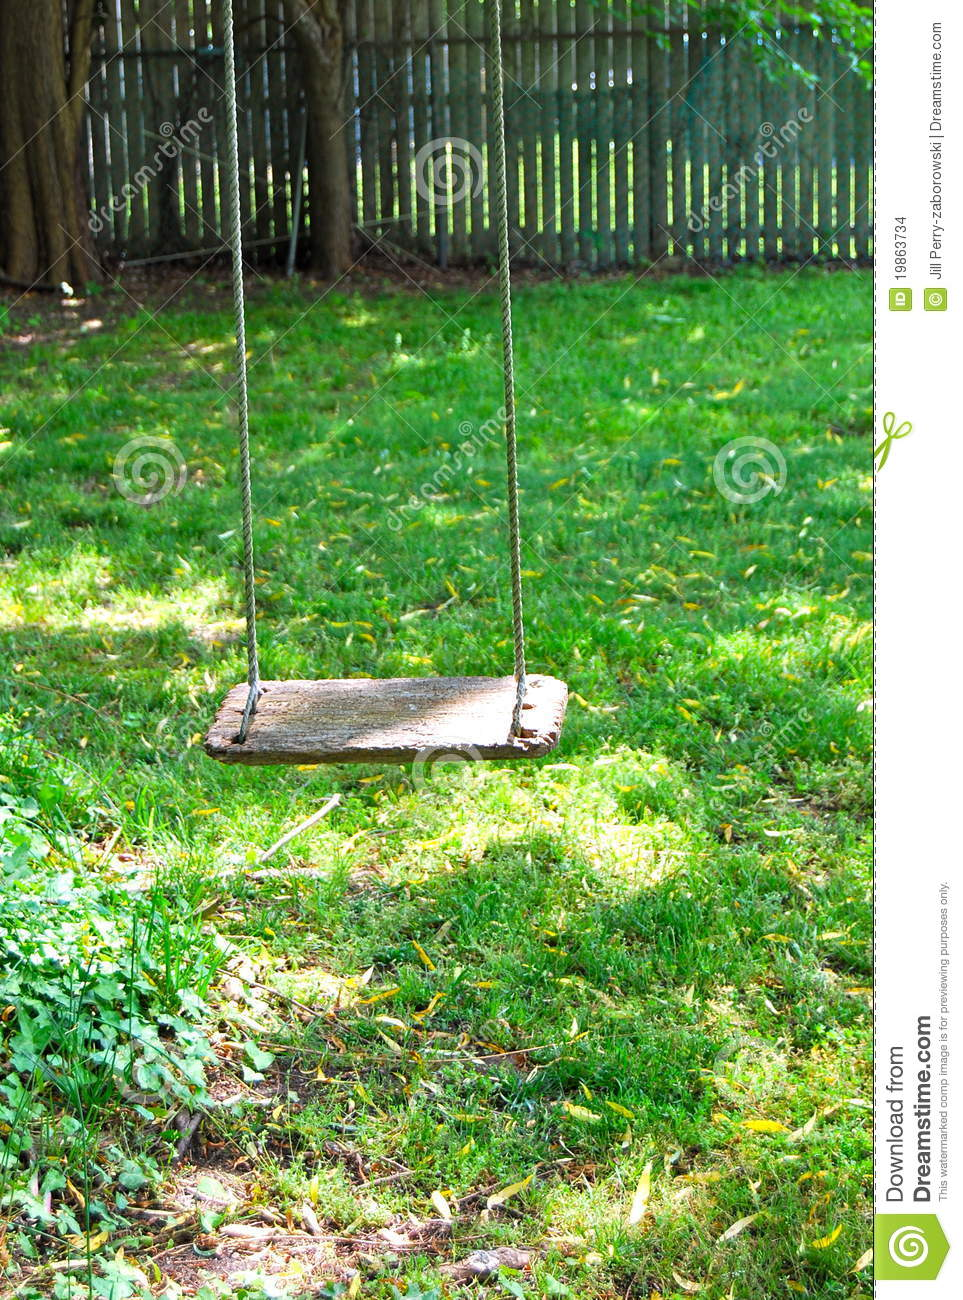 wood swing hanging from a tree in the backyard with green grass and